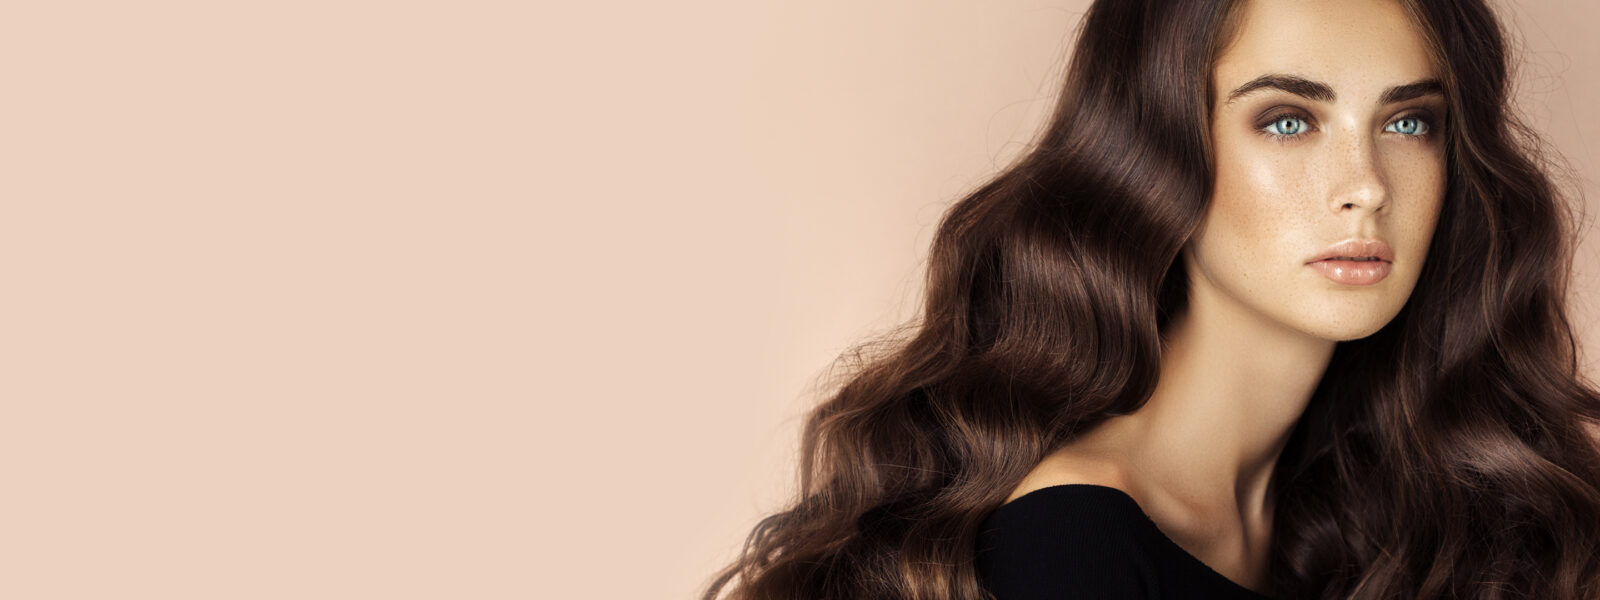 Salon Sima Announces Hair Texture & Treatment Services